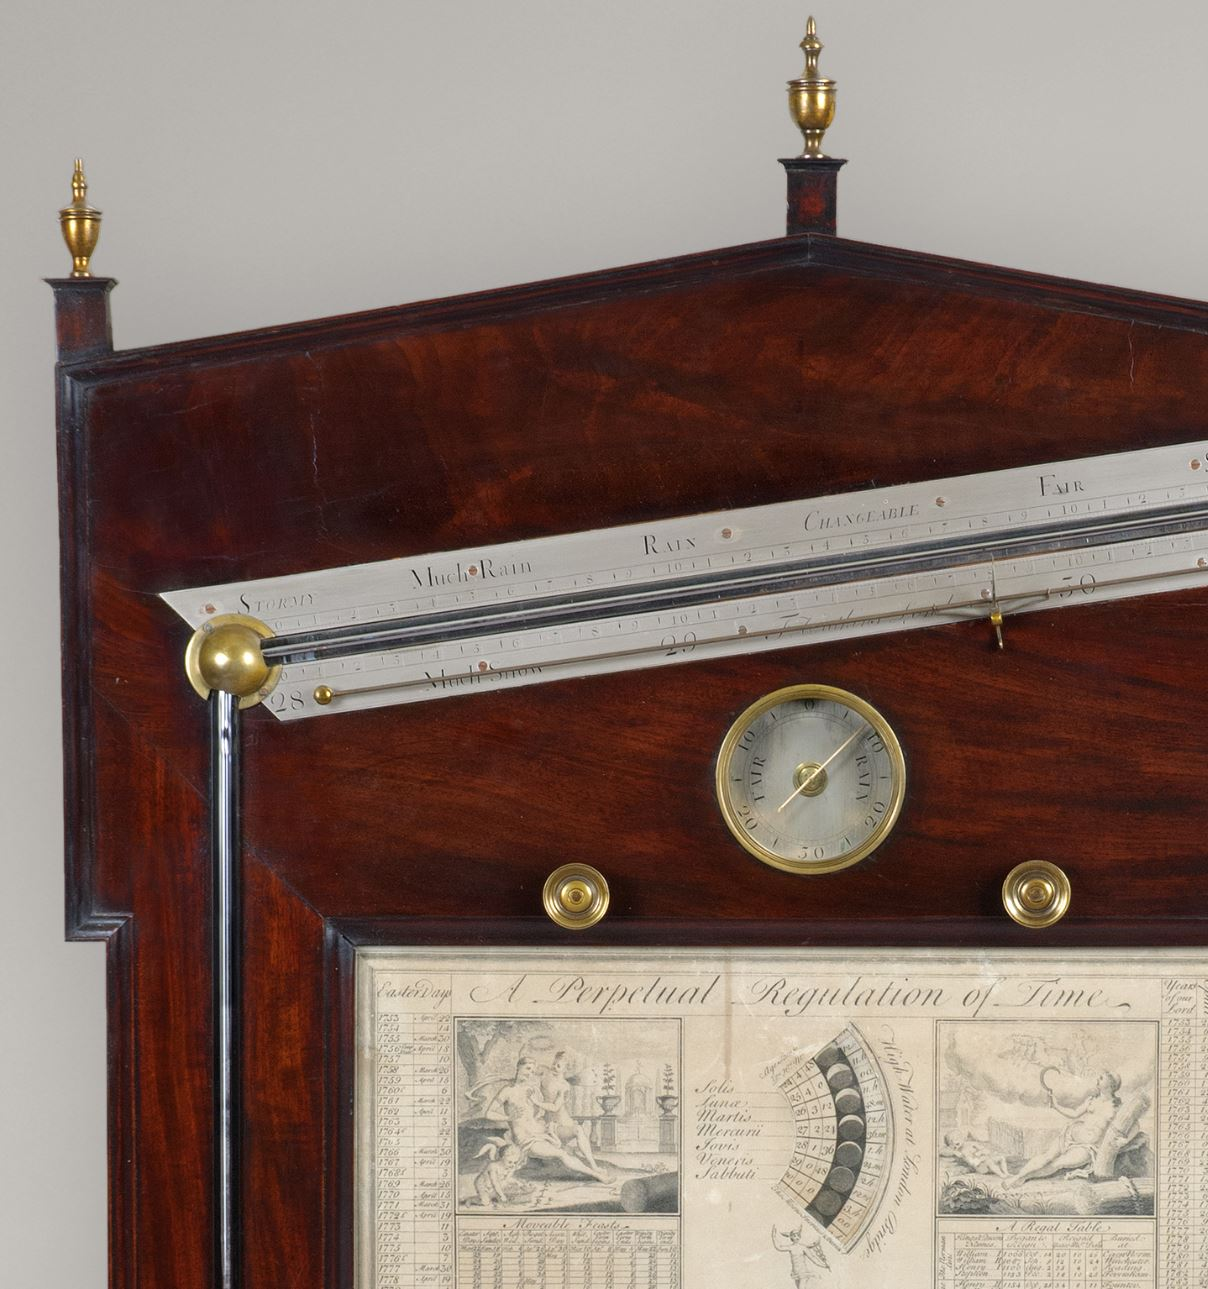 FRANCIS WATKINS, Charing Cross. An important George III period angle barometer